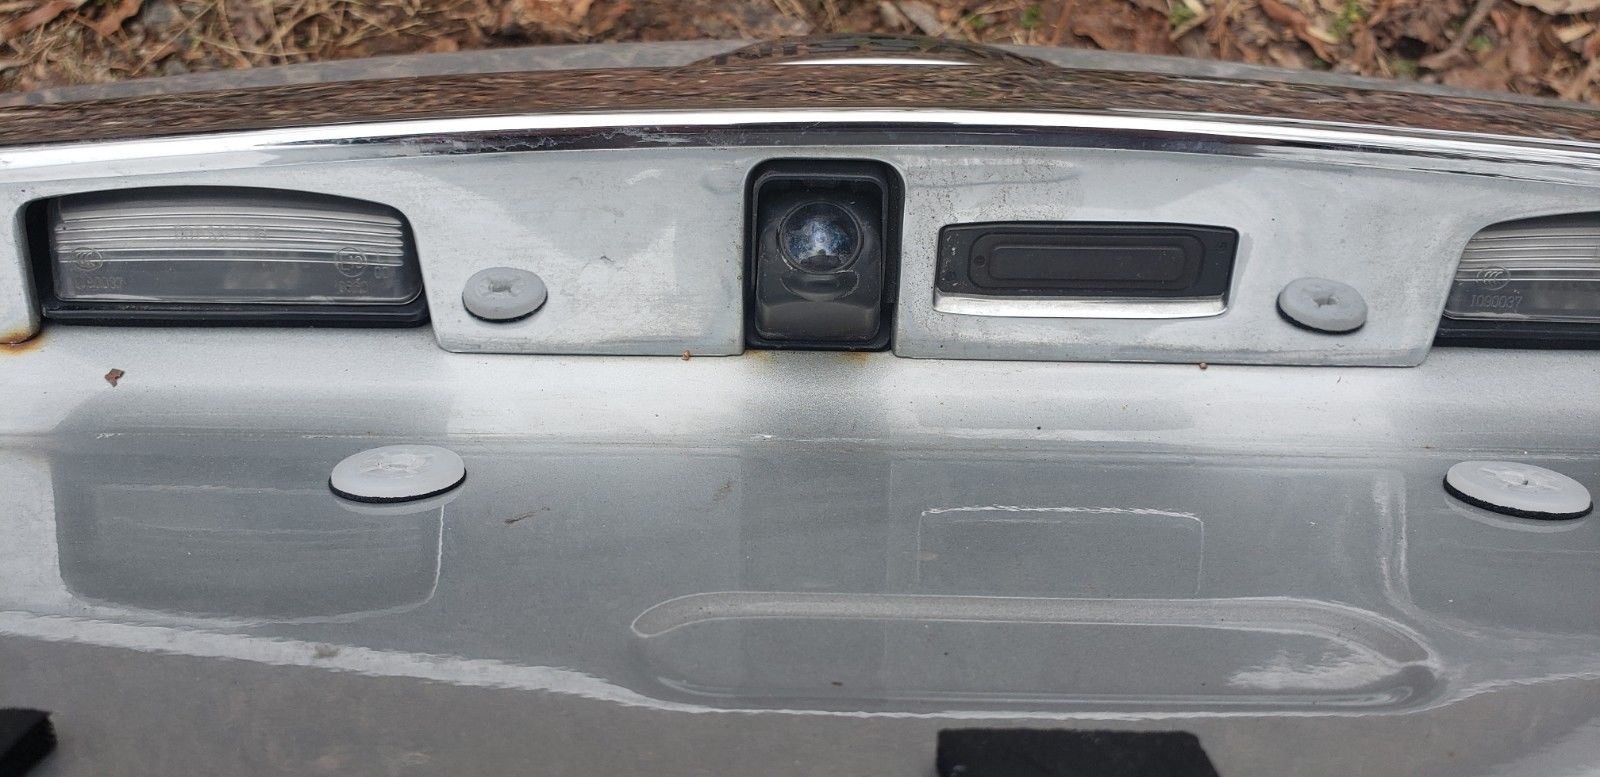 Nissan Altima Sedan Trunk Lid w Camera SL OEM 2013 2014 2015 Does Not Apply